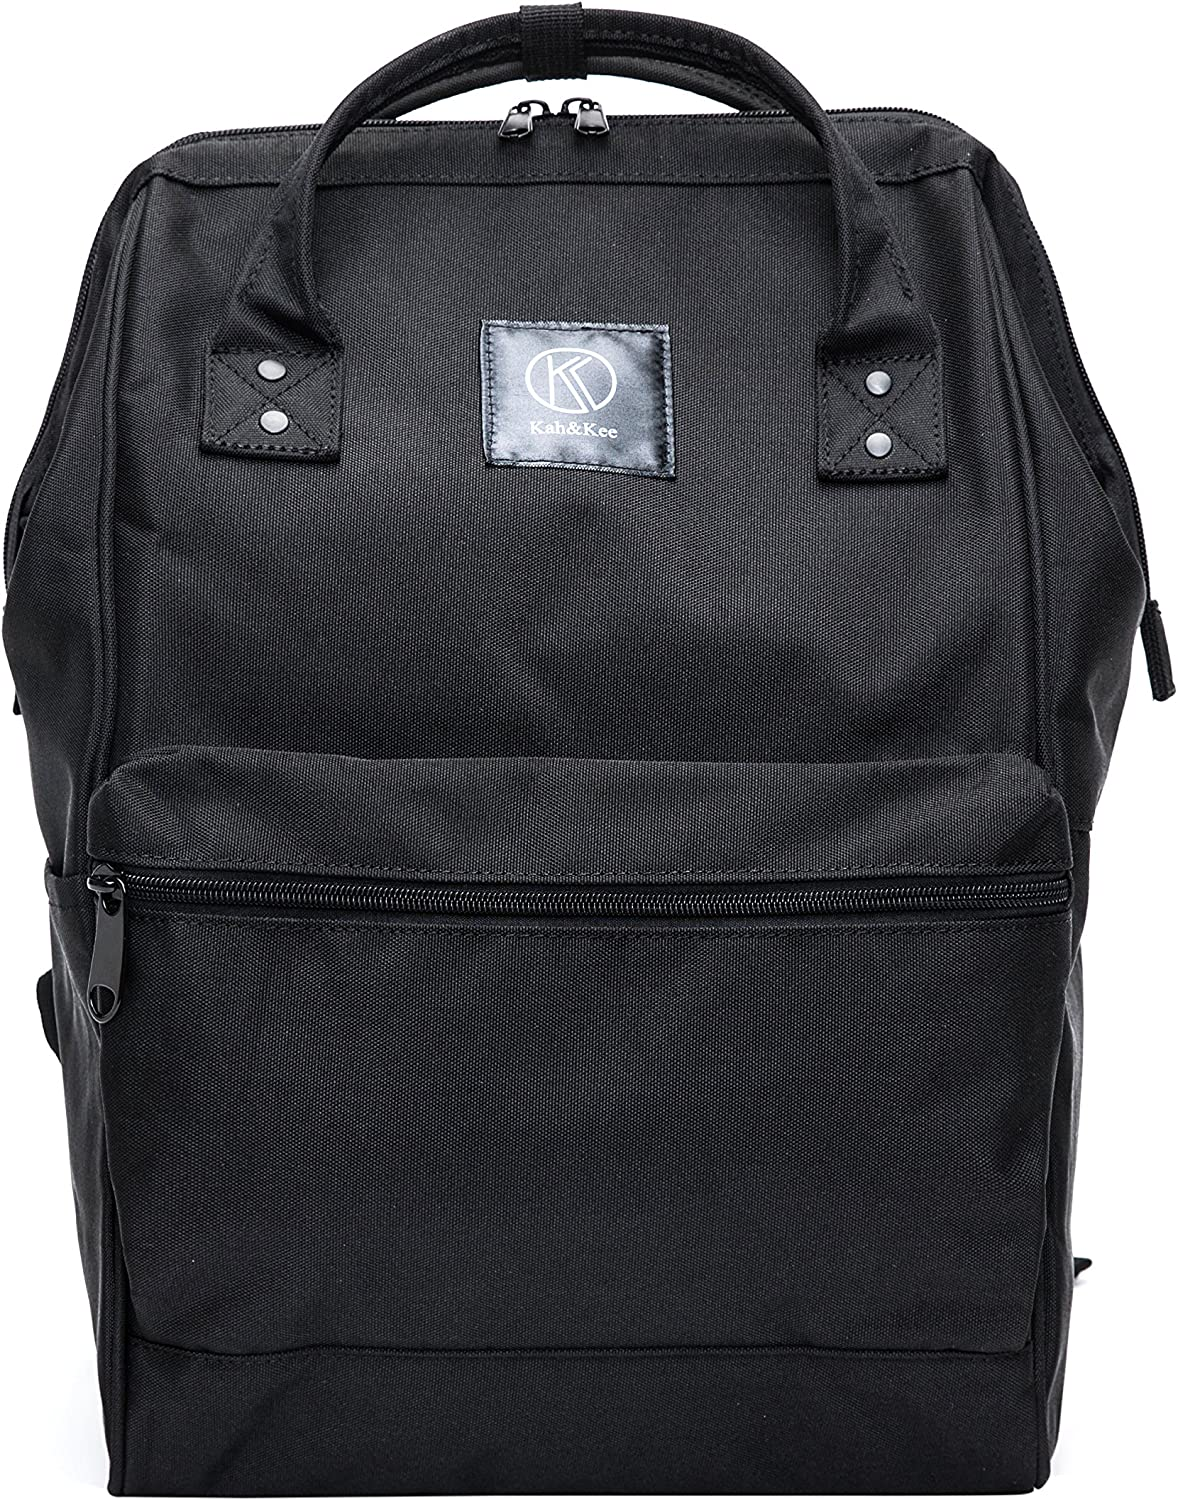 Kah&Kee Polyester Travel Backpack Functional Anti-theft School Laptop for Women Men (Black, Large)